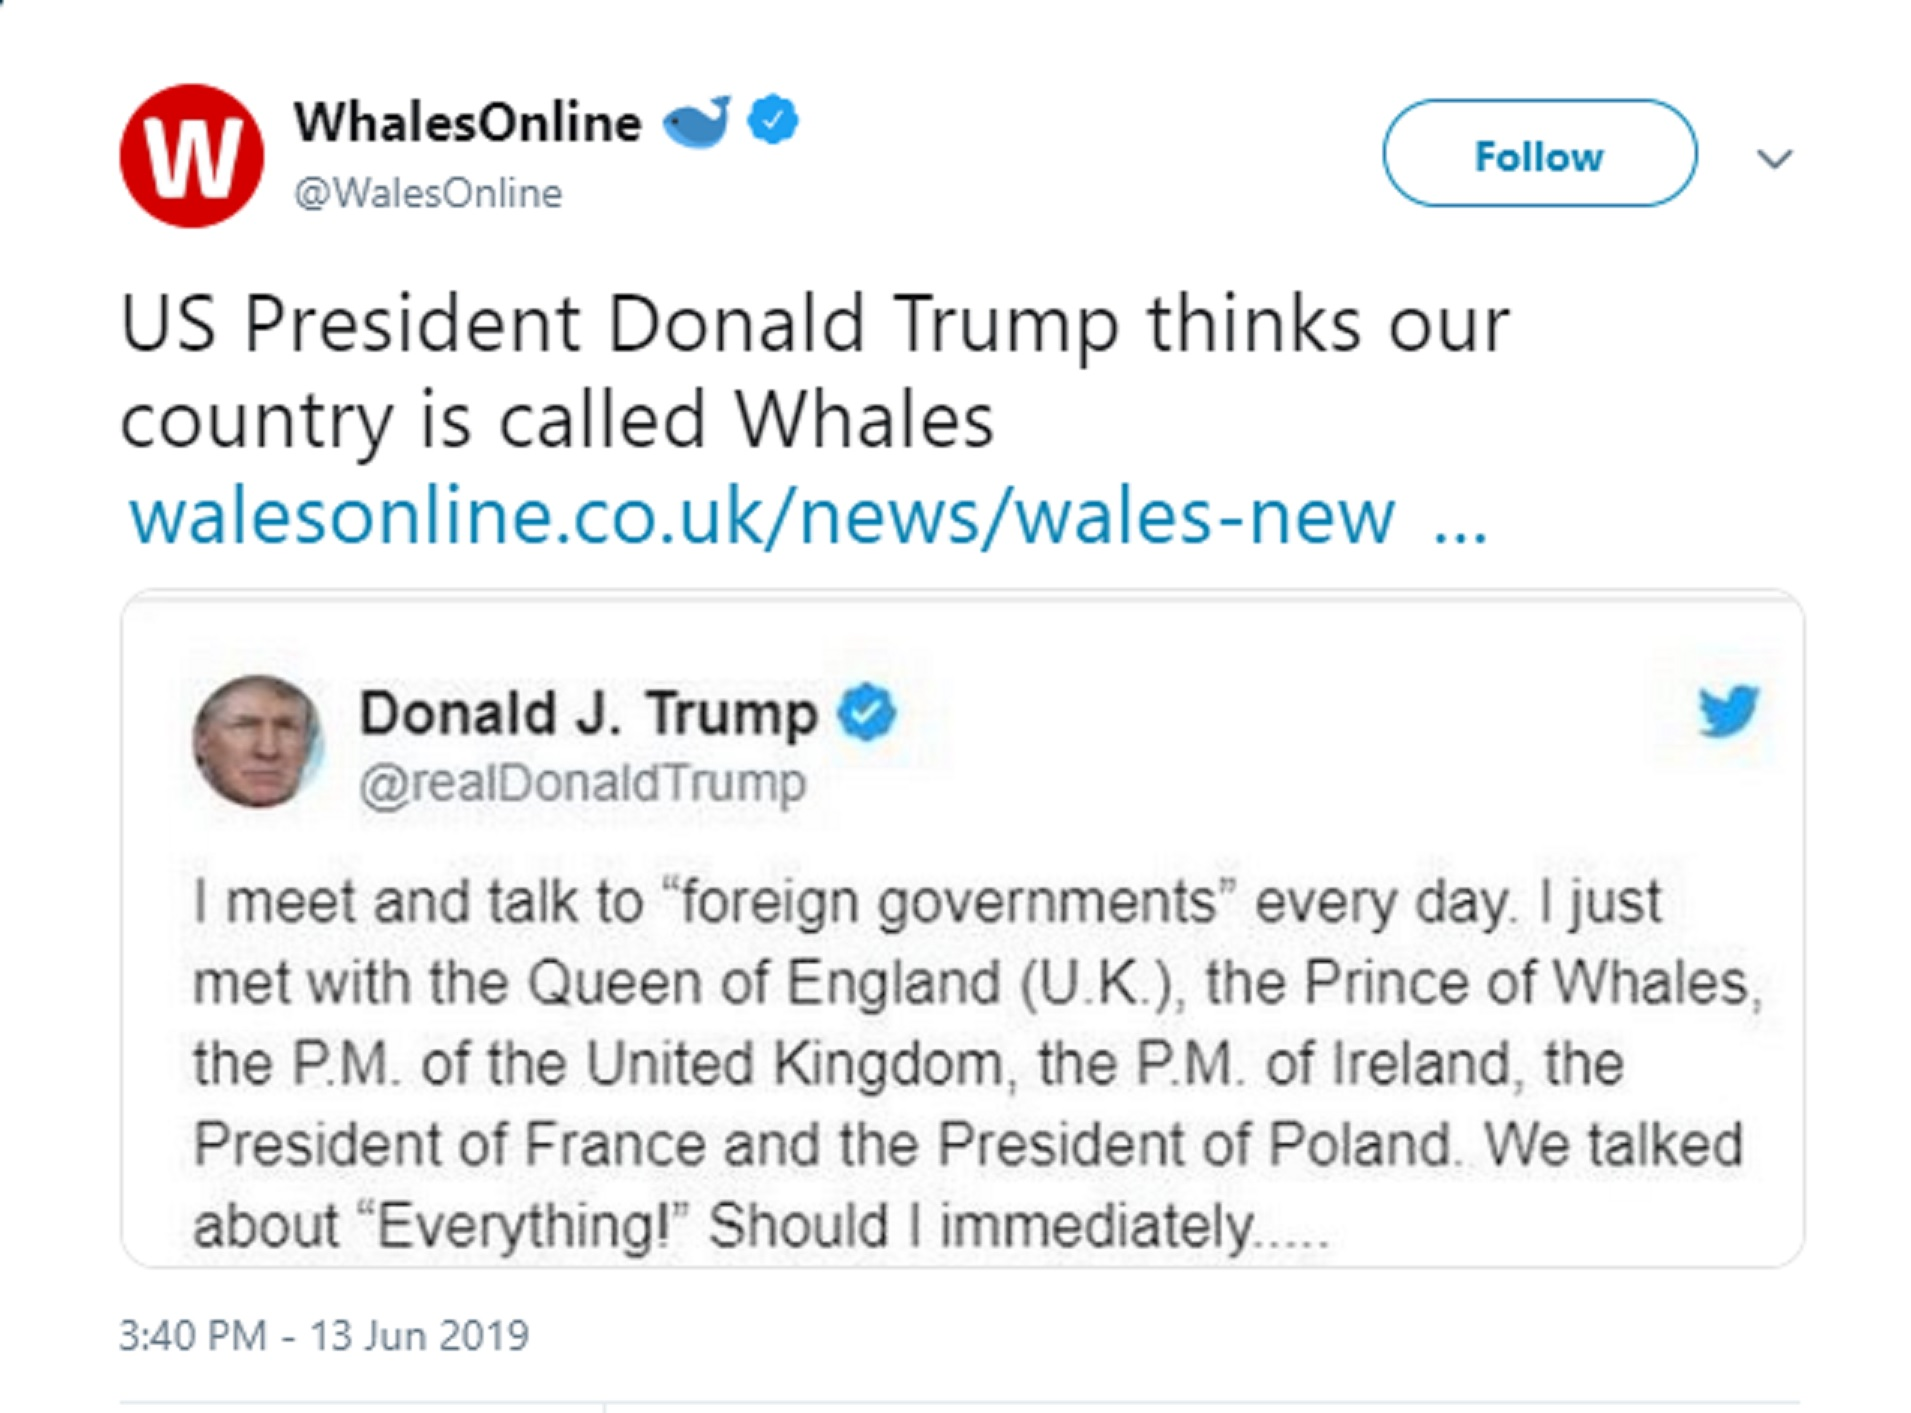 A screen grab of a tweet from @WalesOnline